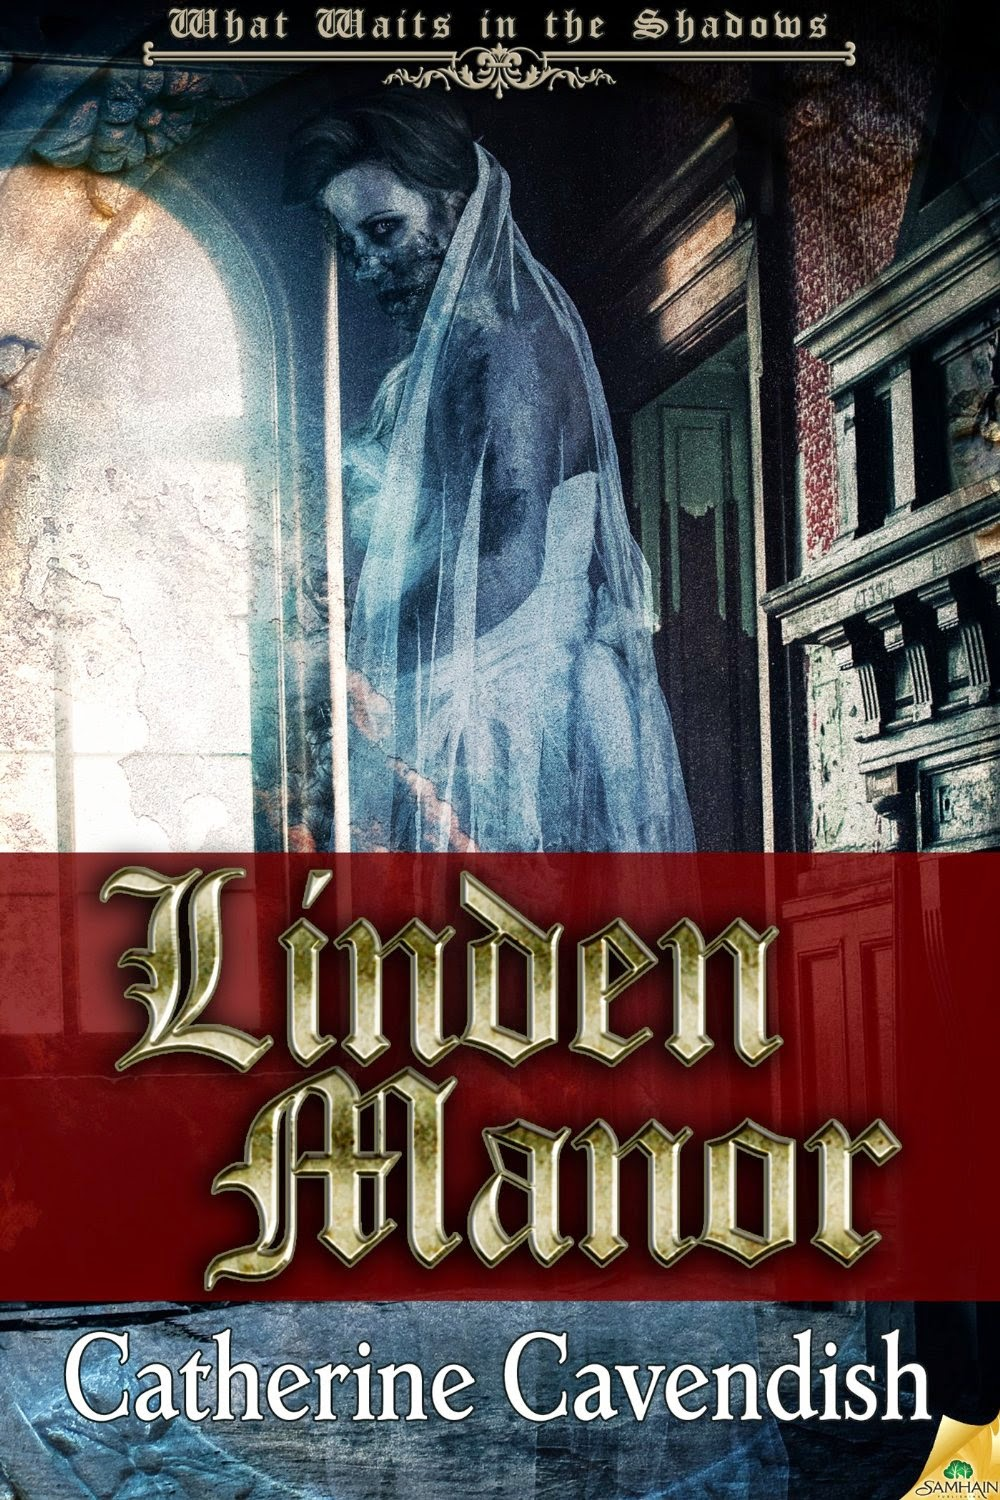 Linden Manor (What Waits in the Shadows) by Catherine Cavendish